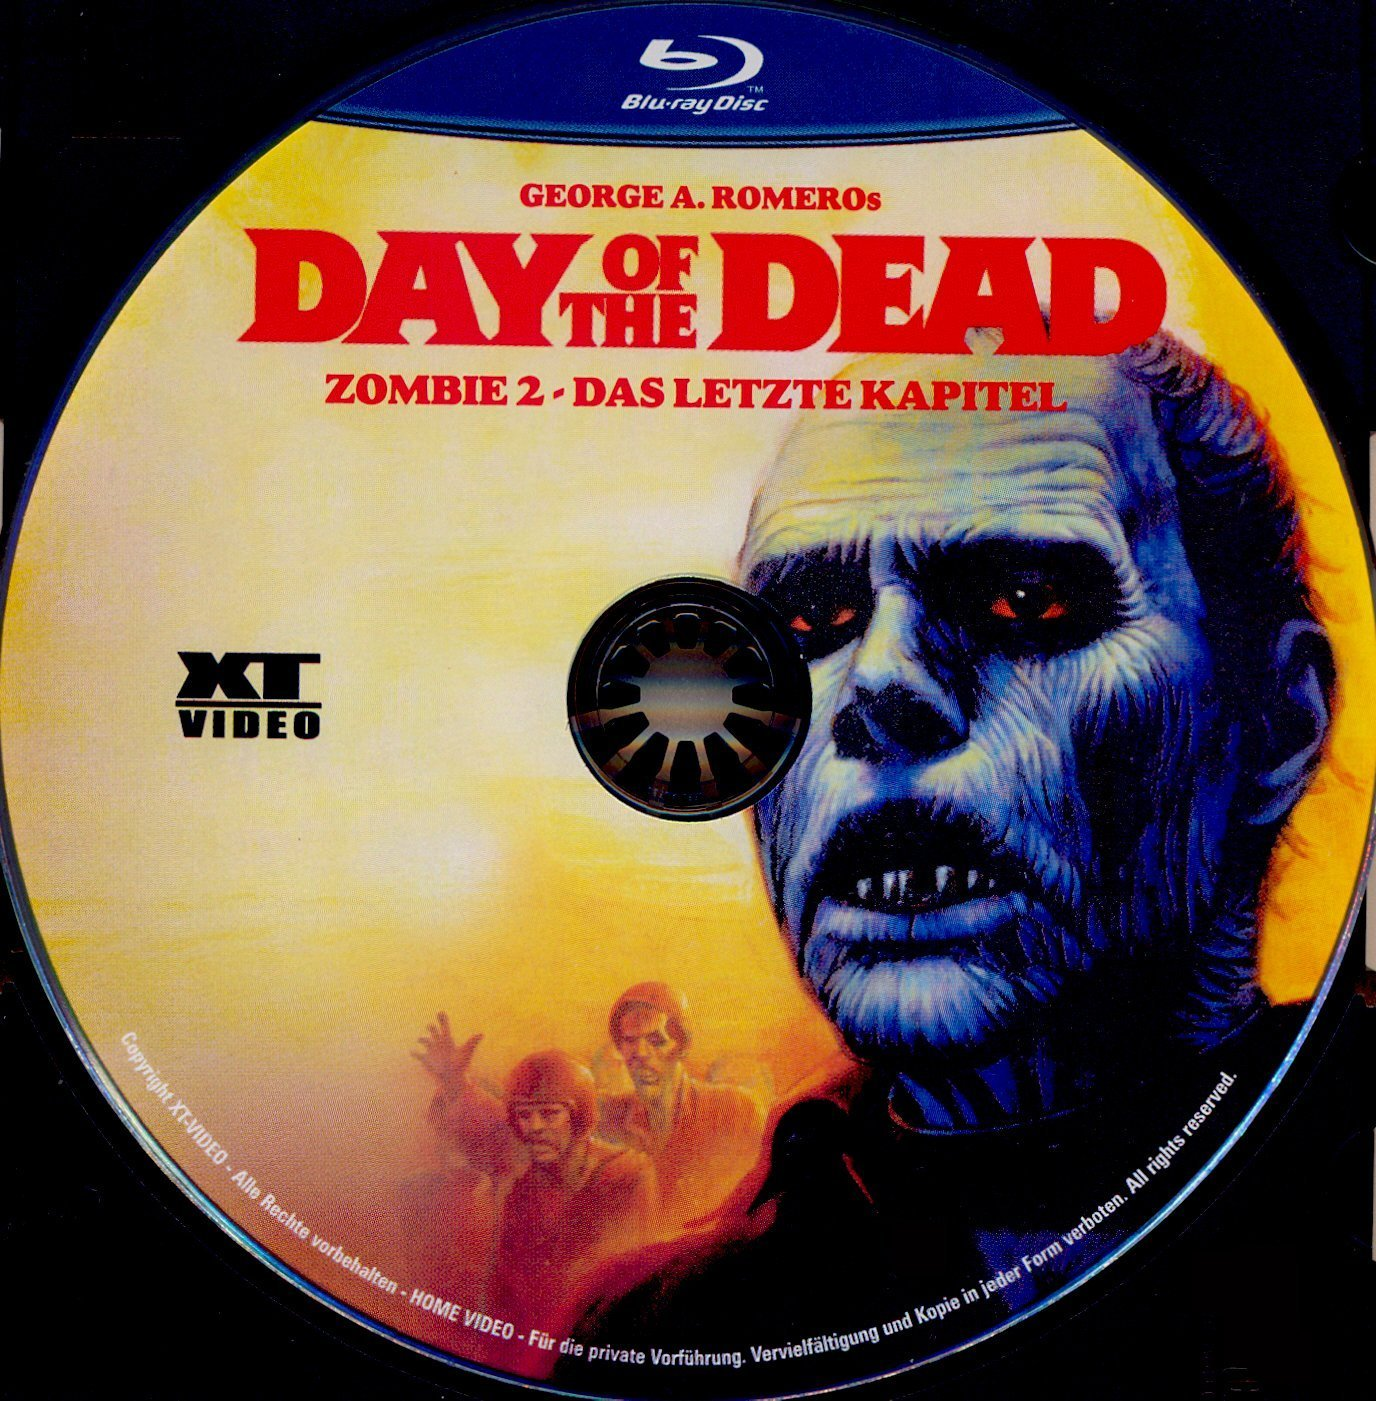 Day of the dead 2